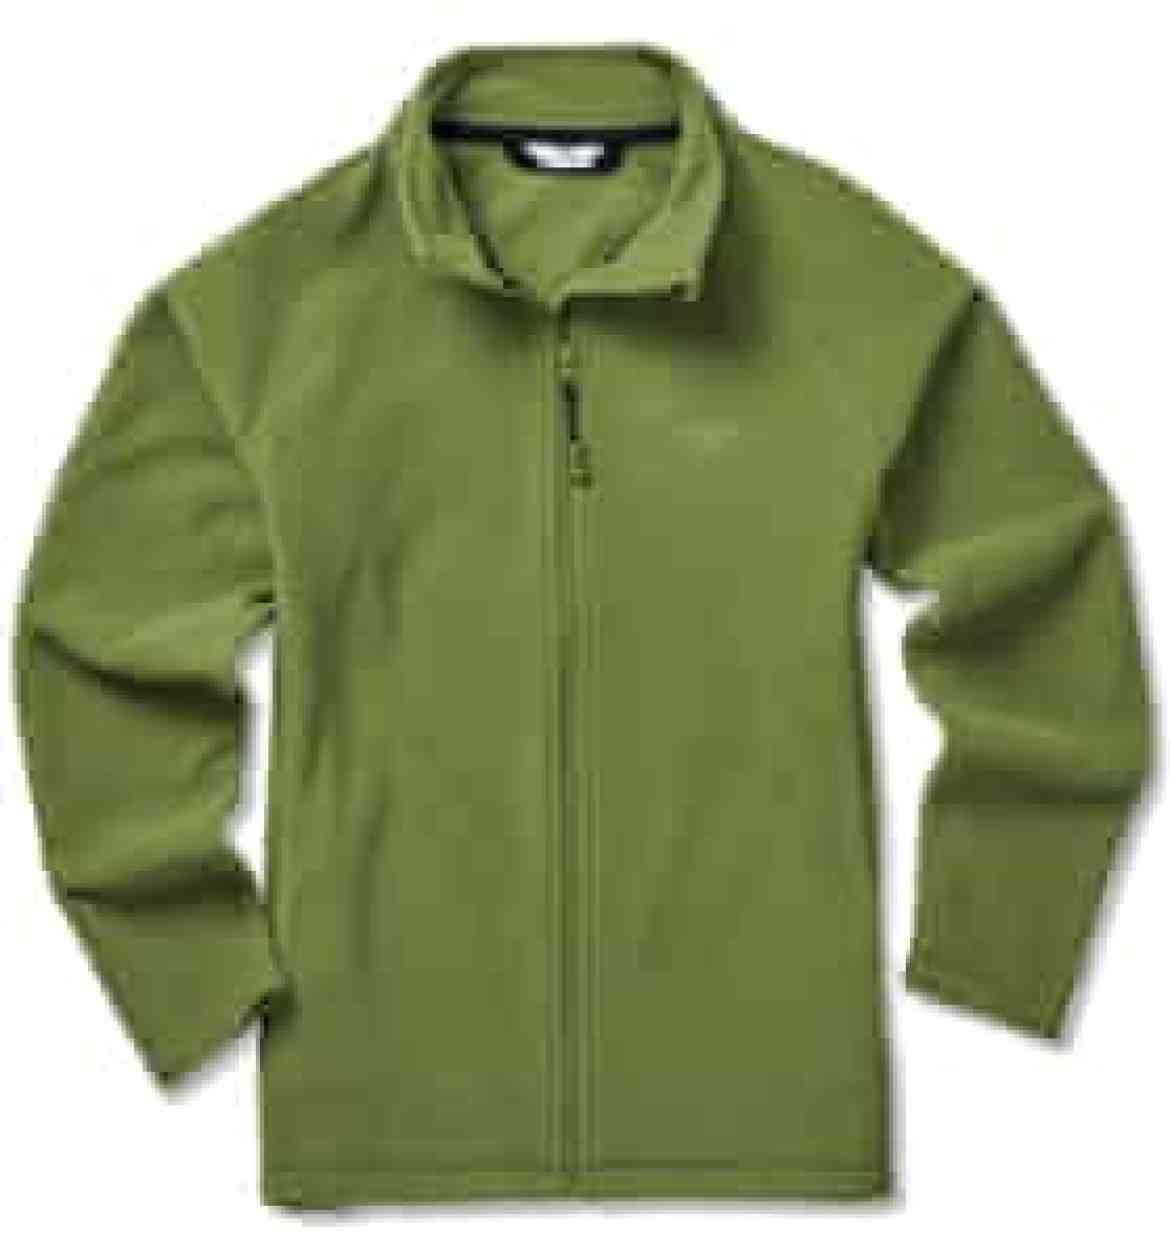 Cotton Traders Recycled Microfleece.